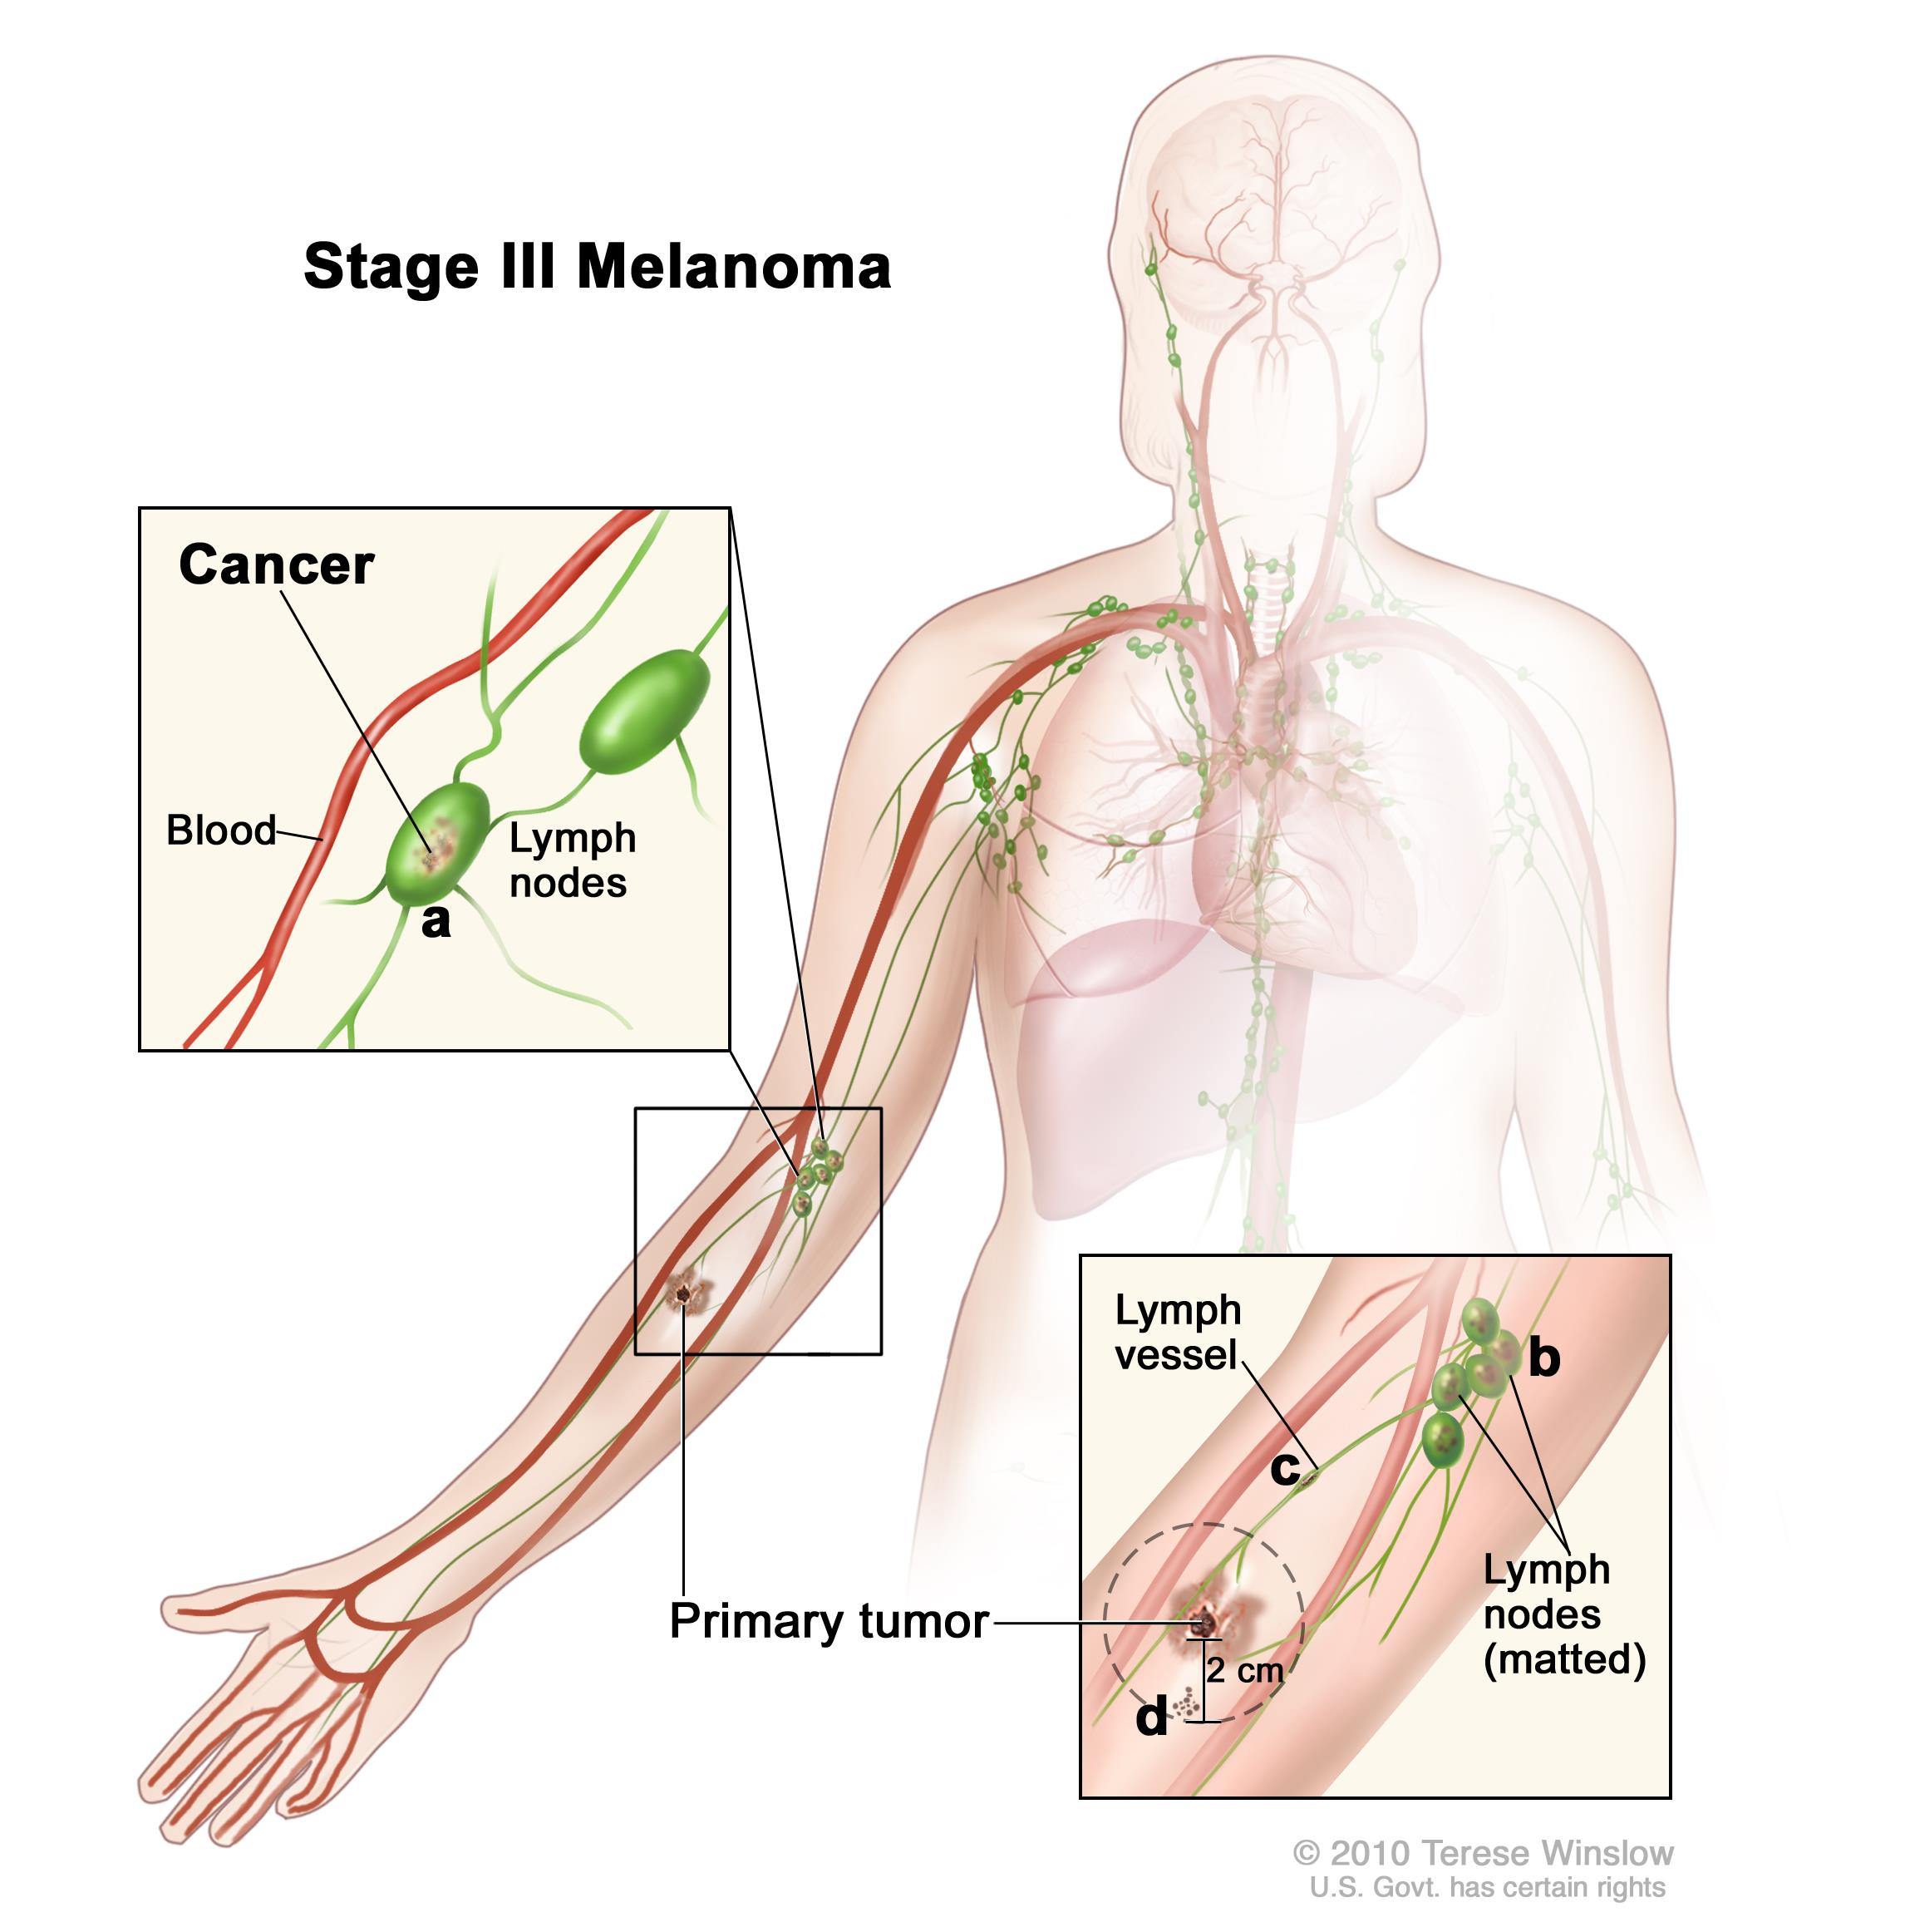 Stage III melanoma; drawing shows a primary tumor on the lower arm. In the top inset, cancer is shown (a) in lymph nodes near a blood vessel. In the bottom inset, cancer is shown (b) in lymph nodes that are joined together (matted), (c) in a lymph vessel, and (d) not more than 2 centimeters away from the primary tumor.